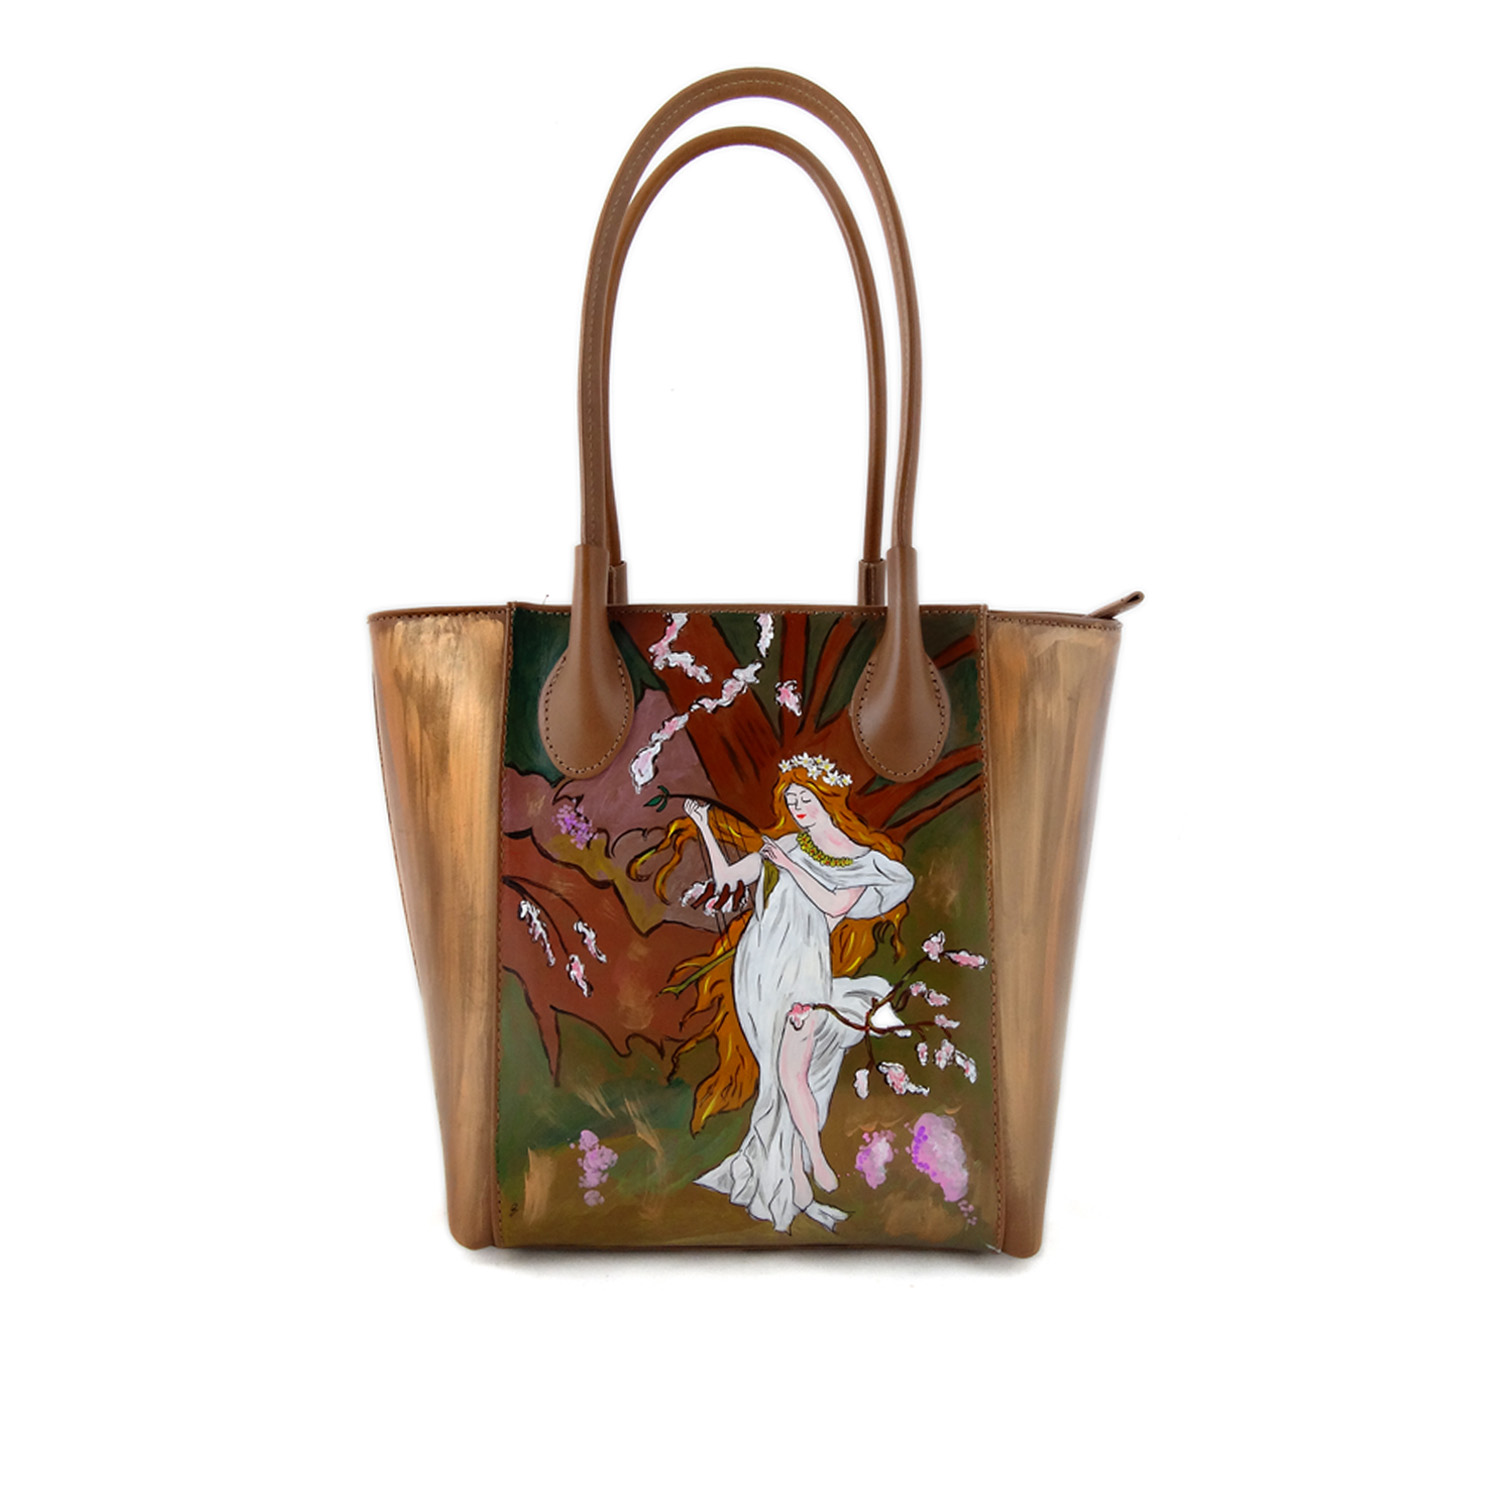 Hand painted bag - The Spring by Mucha